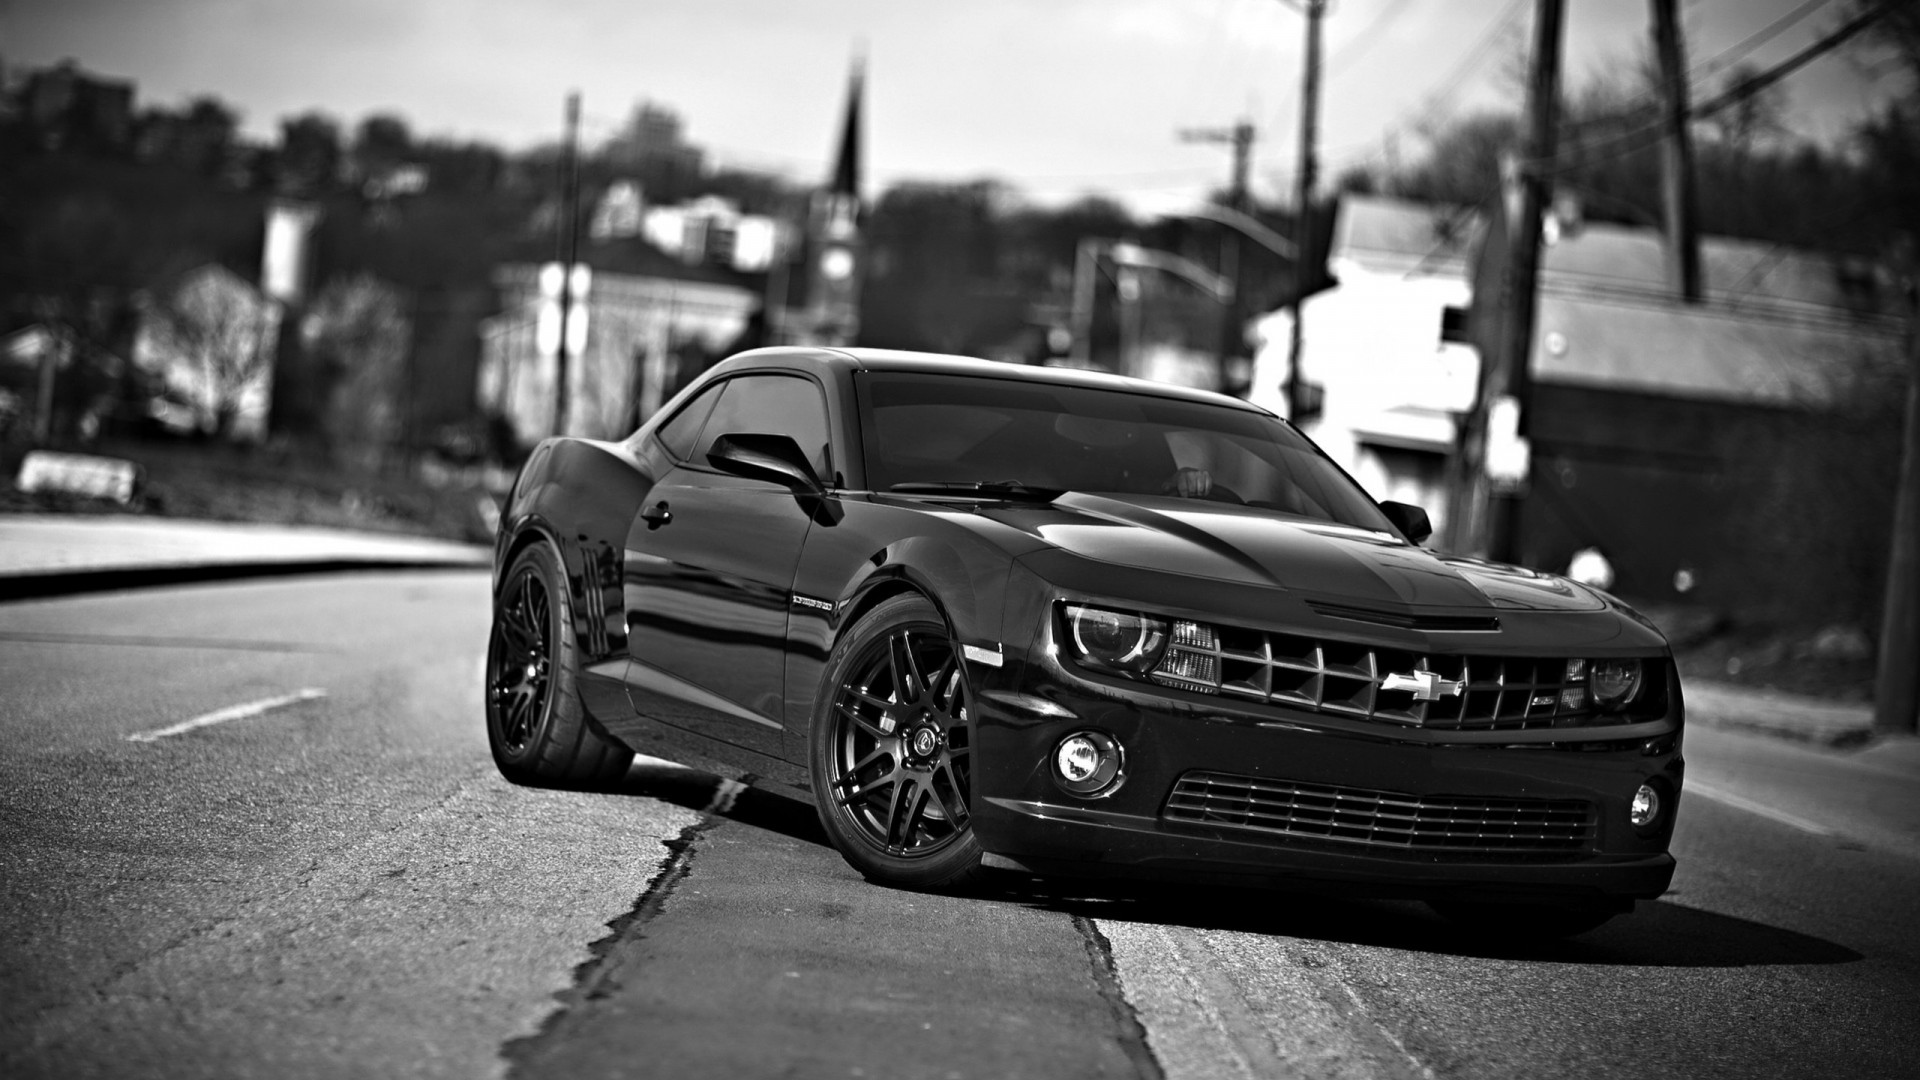 1920x1080 Preview wallpaper chevrolet camaro, chevrolet, cars, front view, black  white